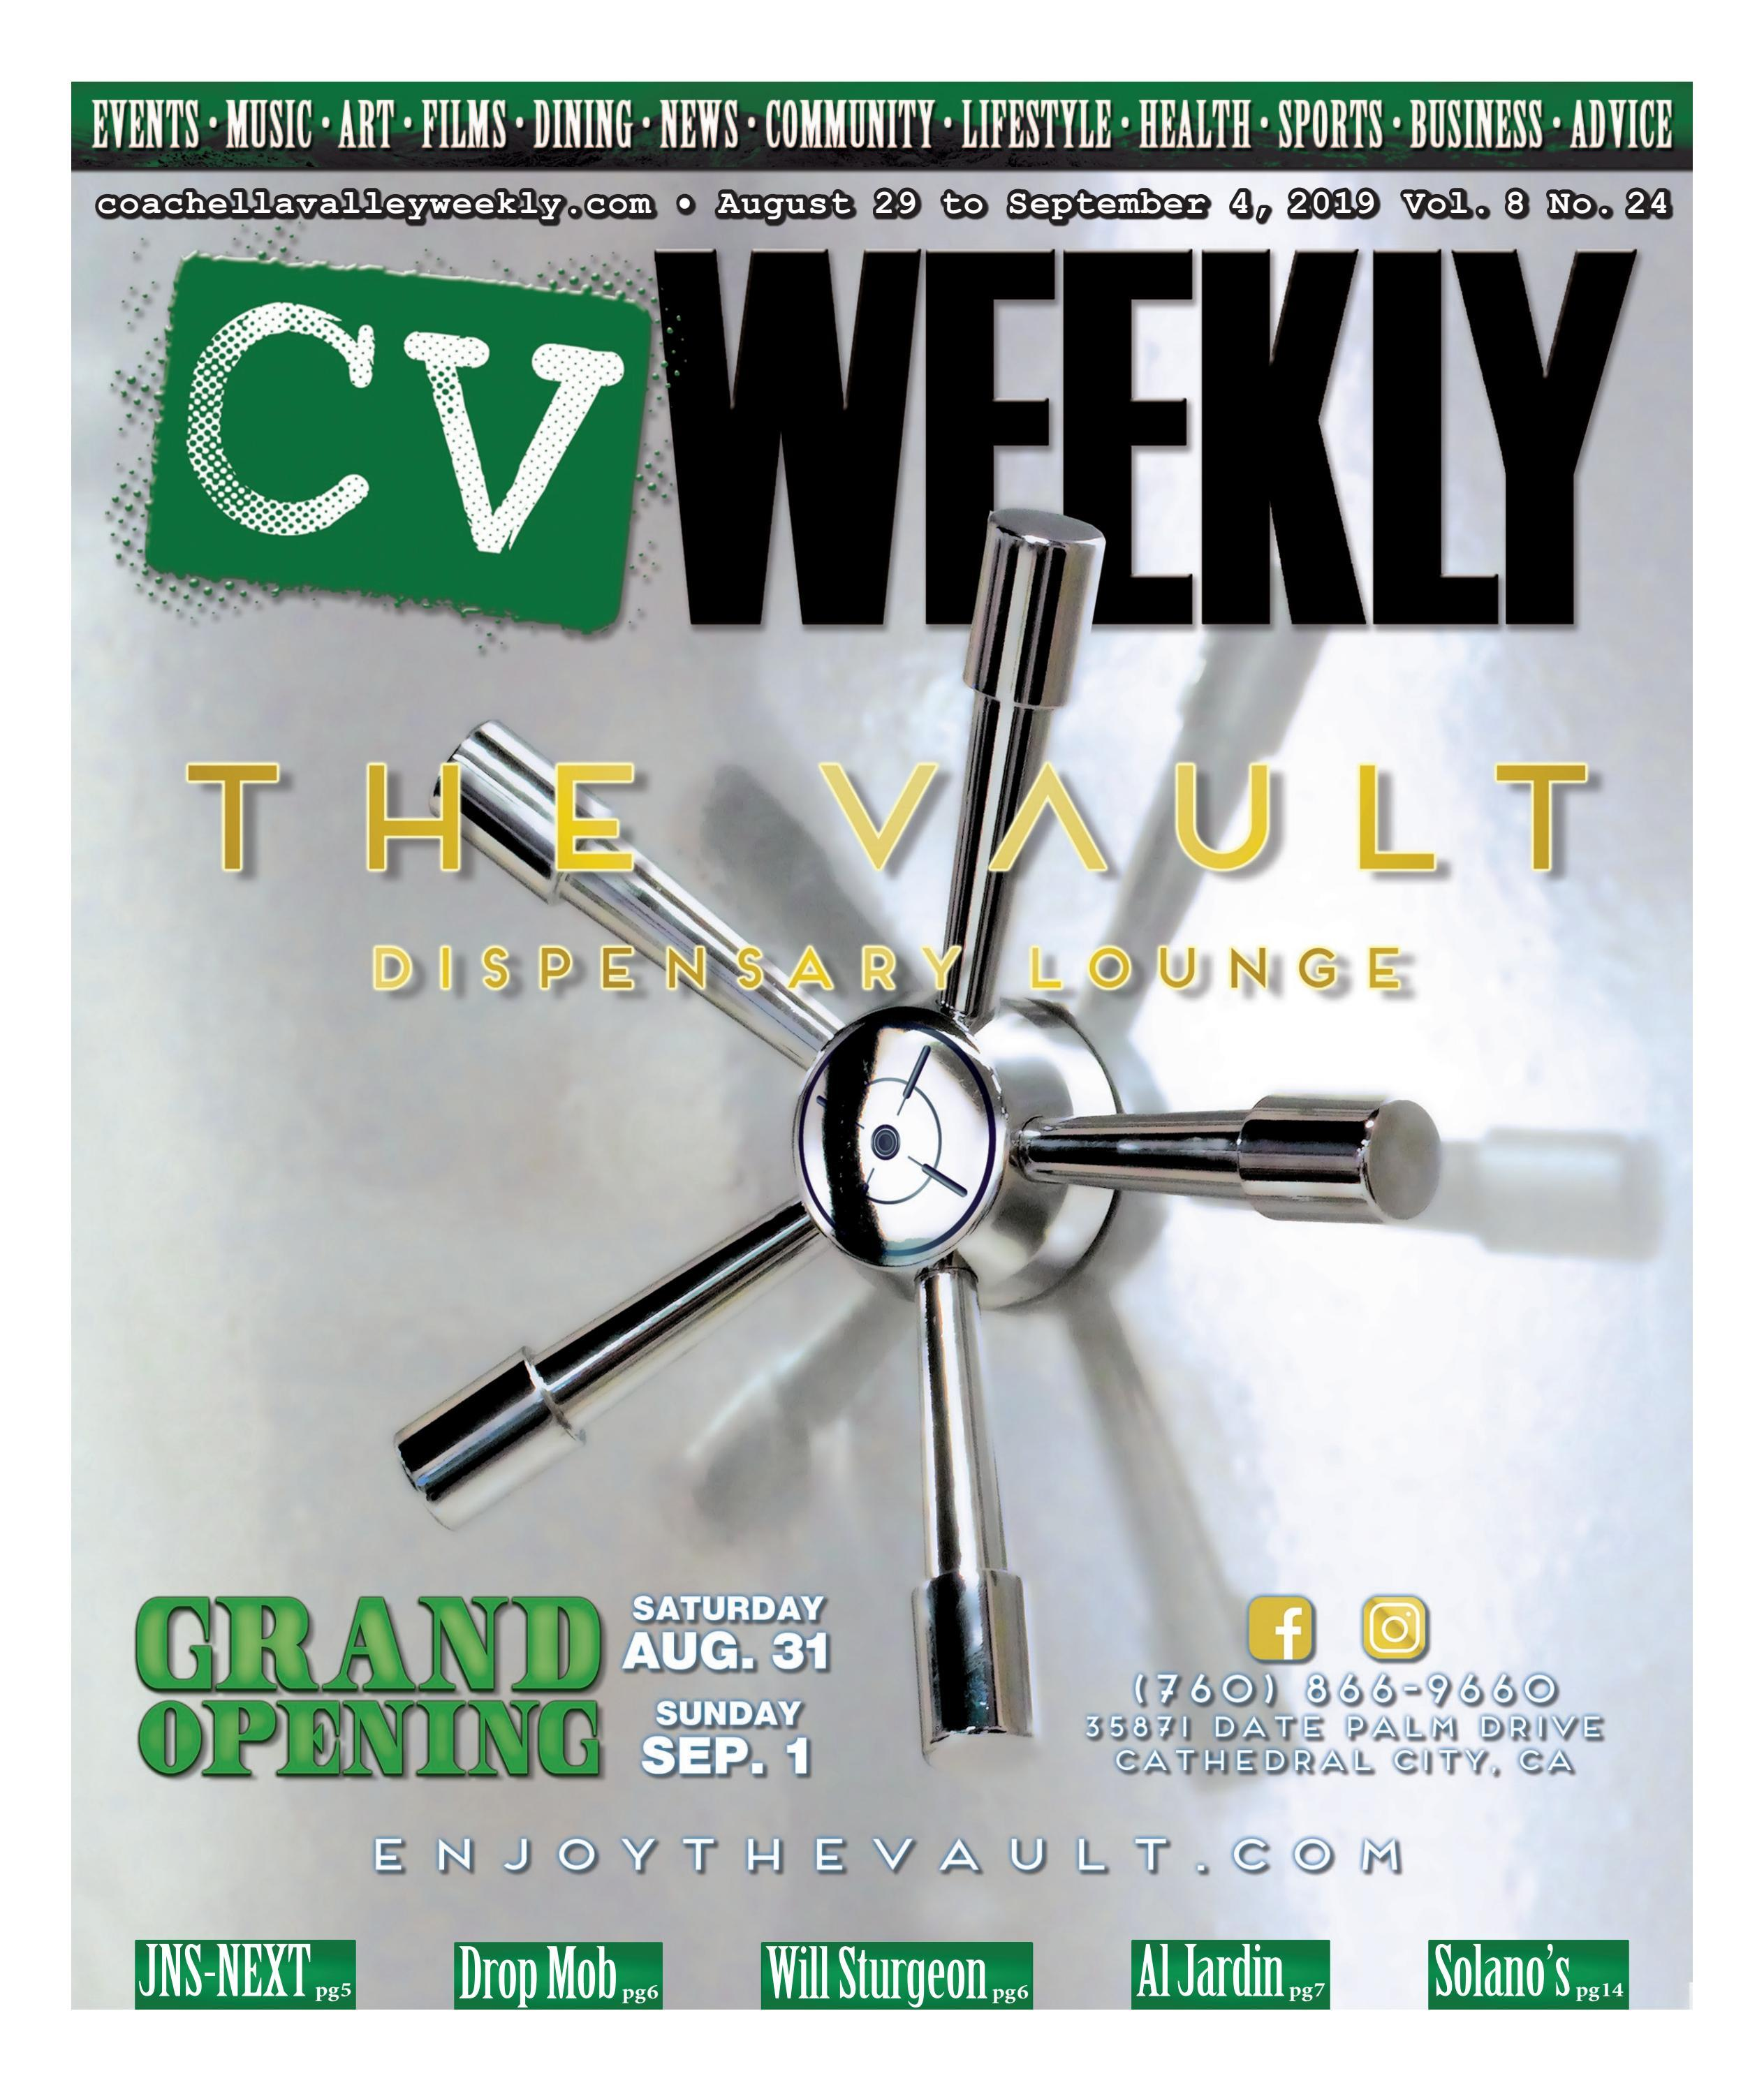 Coachella Valley Weekly - August 29 to September 4, 2019 Vol